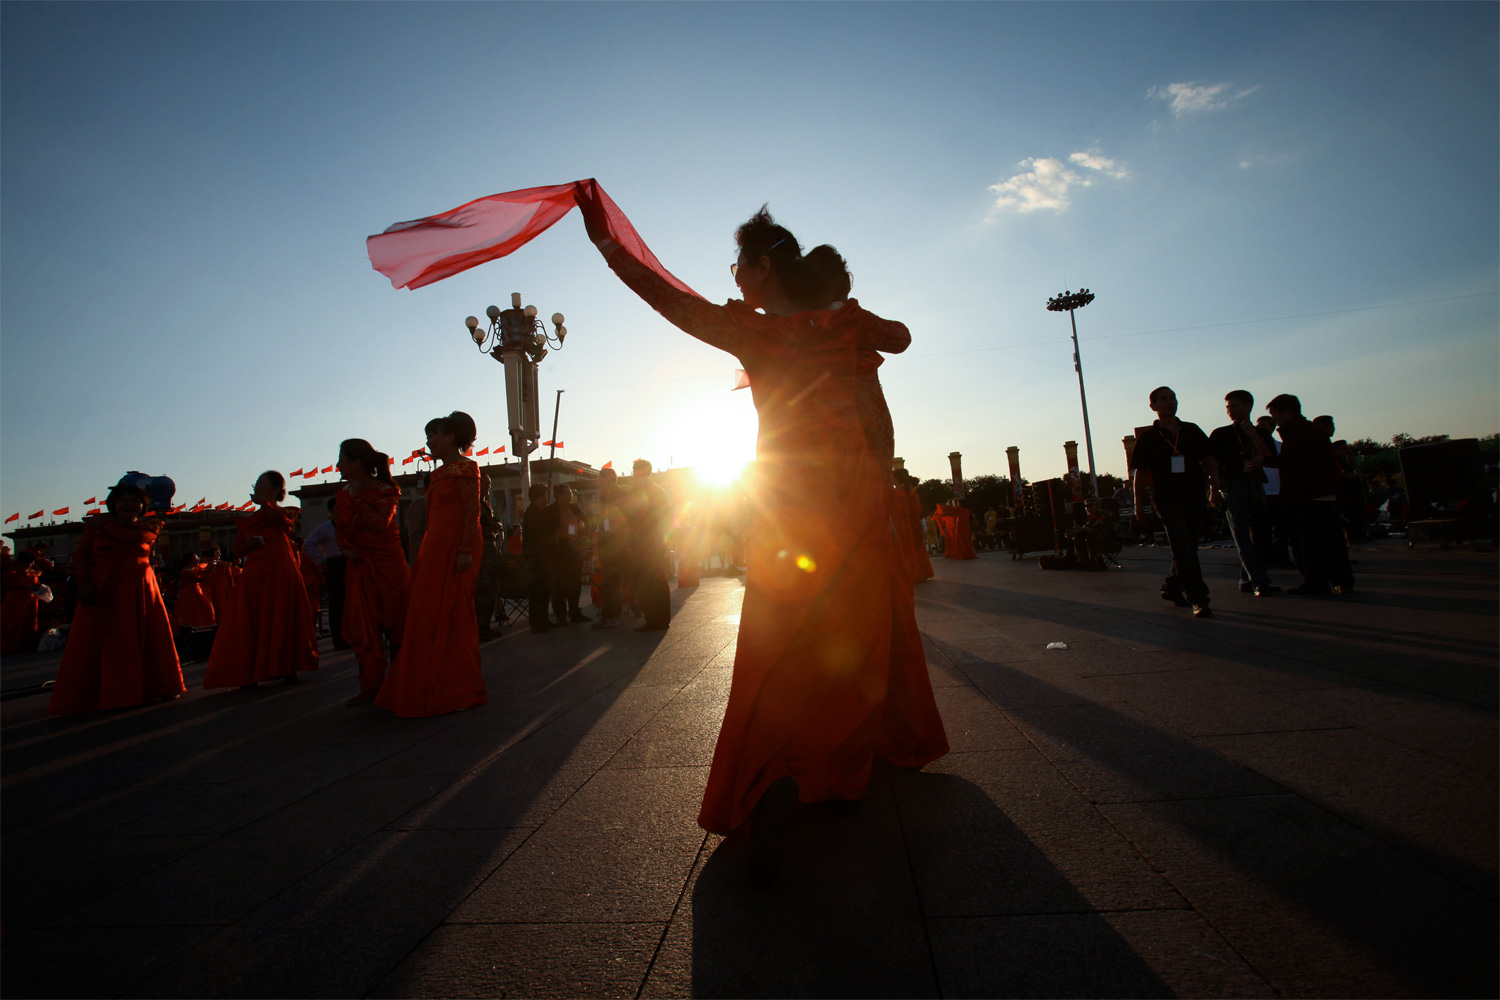 A group of female performers rehearse a routine one last time at sunset on National Day, October 1, 2009 in Tiananmen Square. National Day marks the founding of the People's Republic of China.